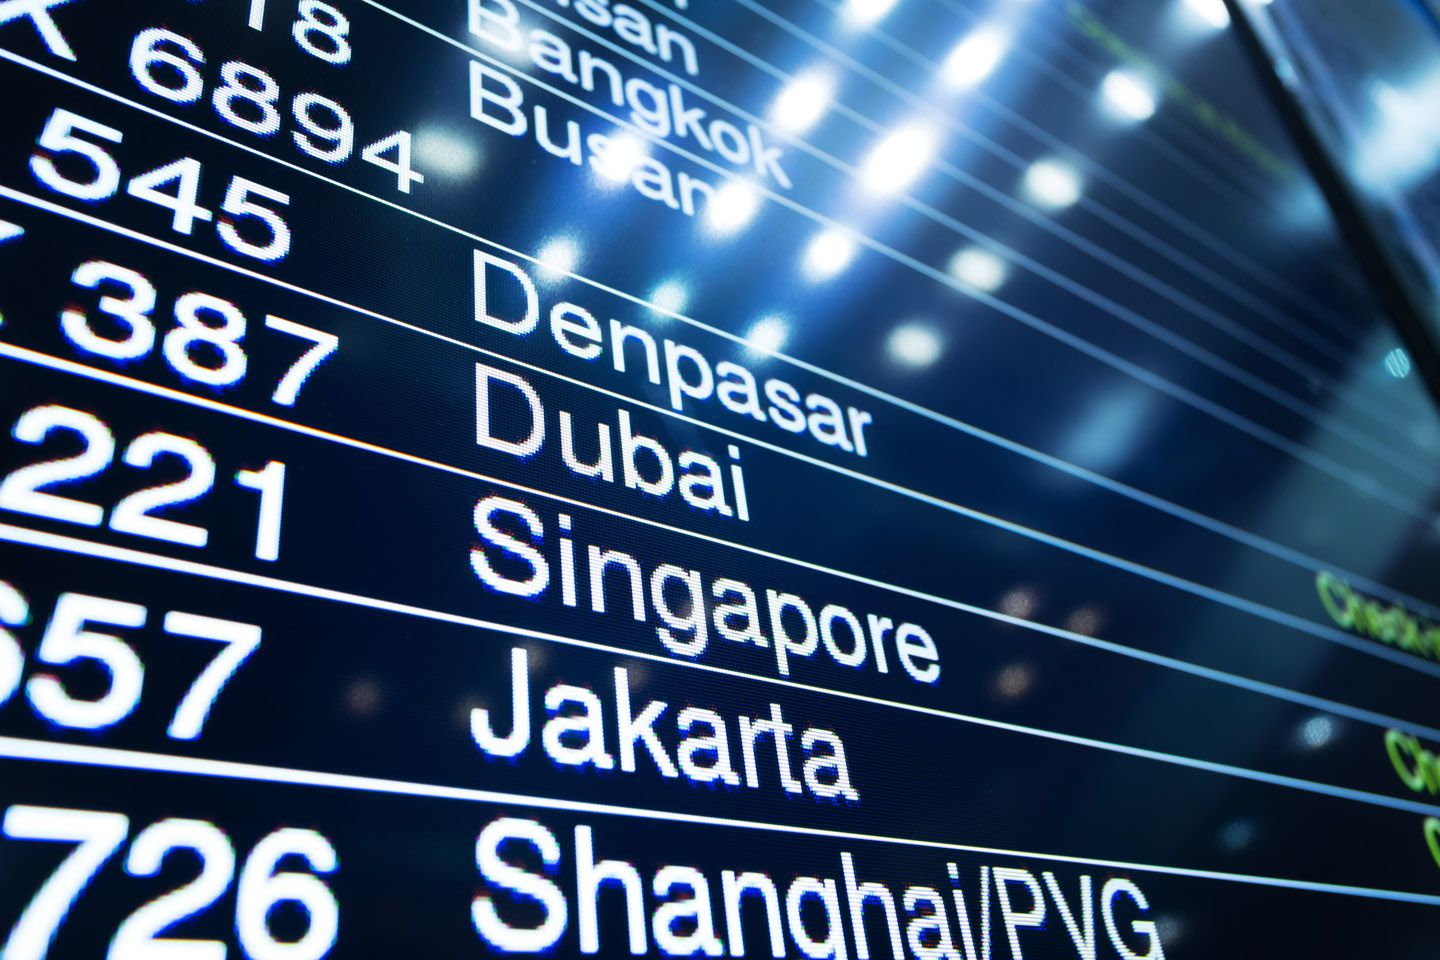 Airasia Airlines Flights And Tickets Web Promo Website Jakarta Singapore Check In